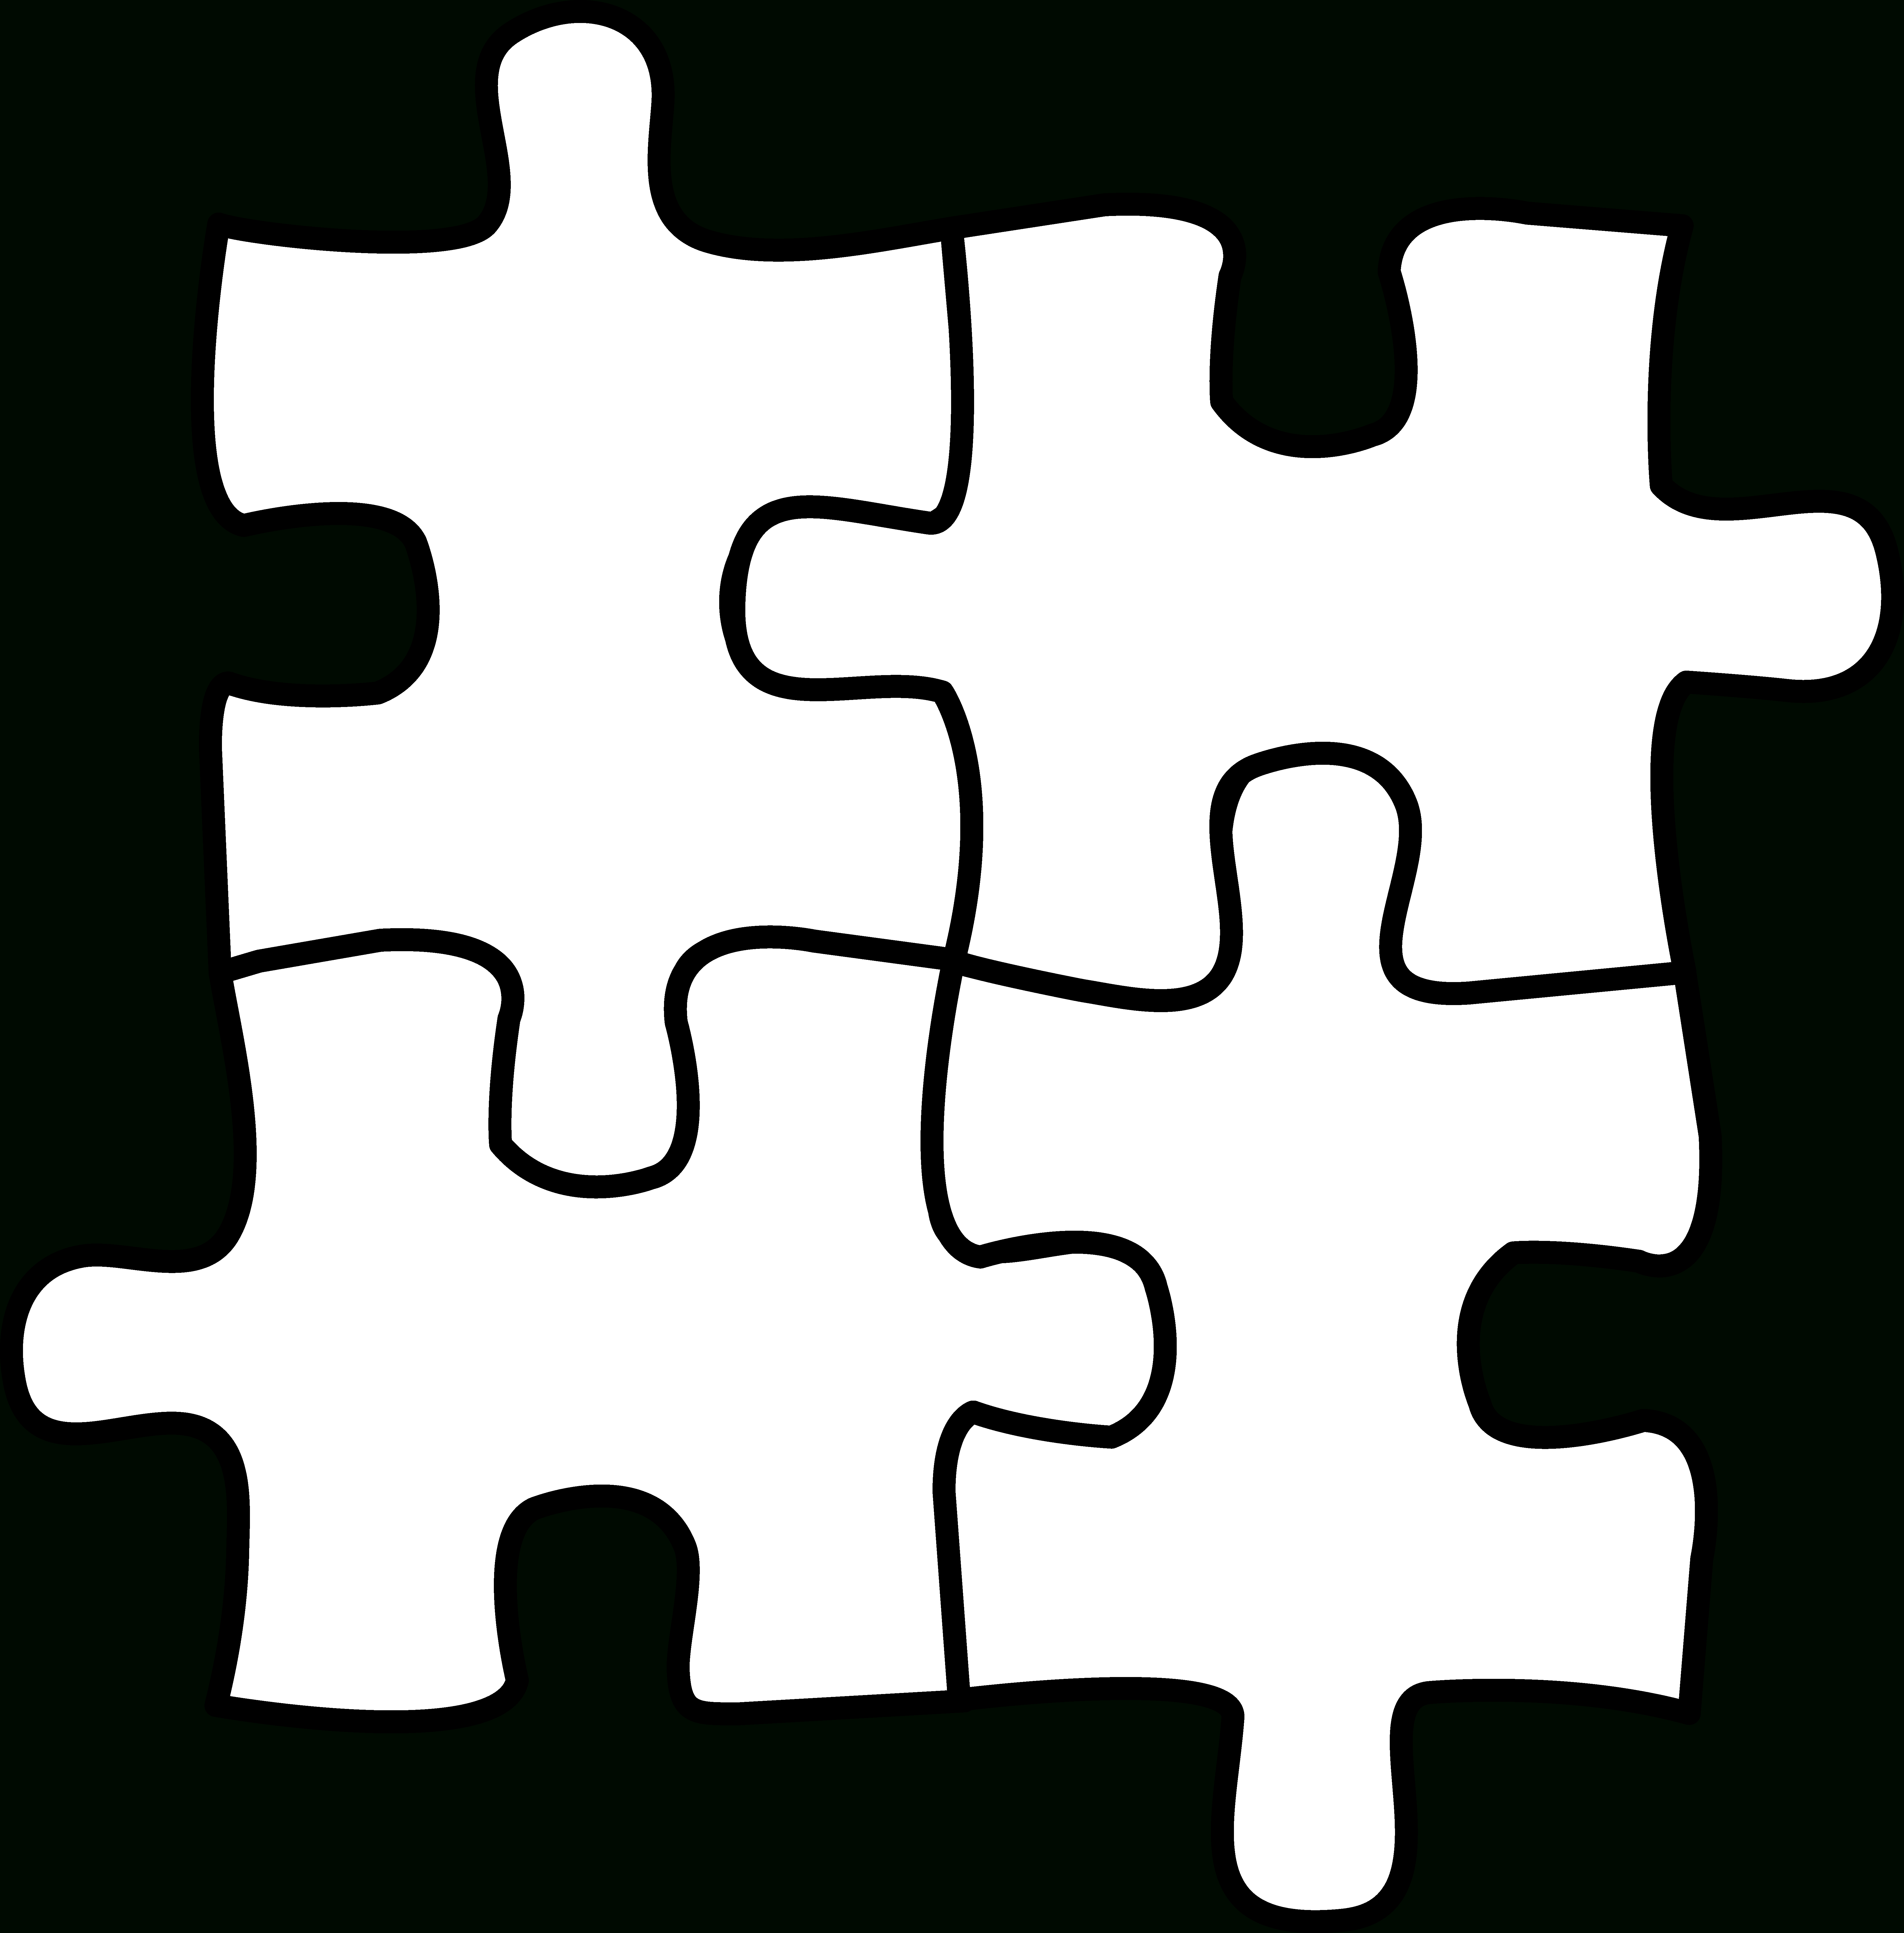 10 Pics Of Puzzle Piece Coloring Pages Of Letters - Autism Puzzle - Free Printable Autism Puzzle Piece